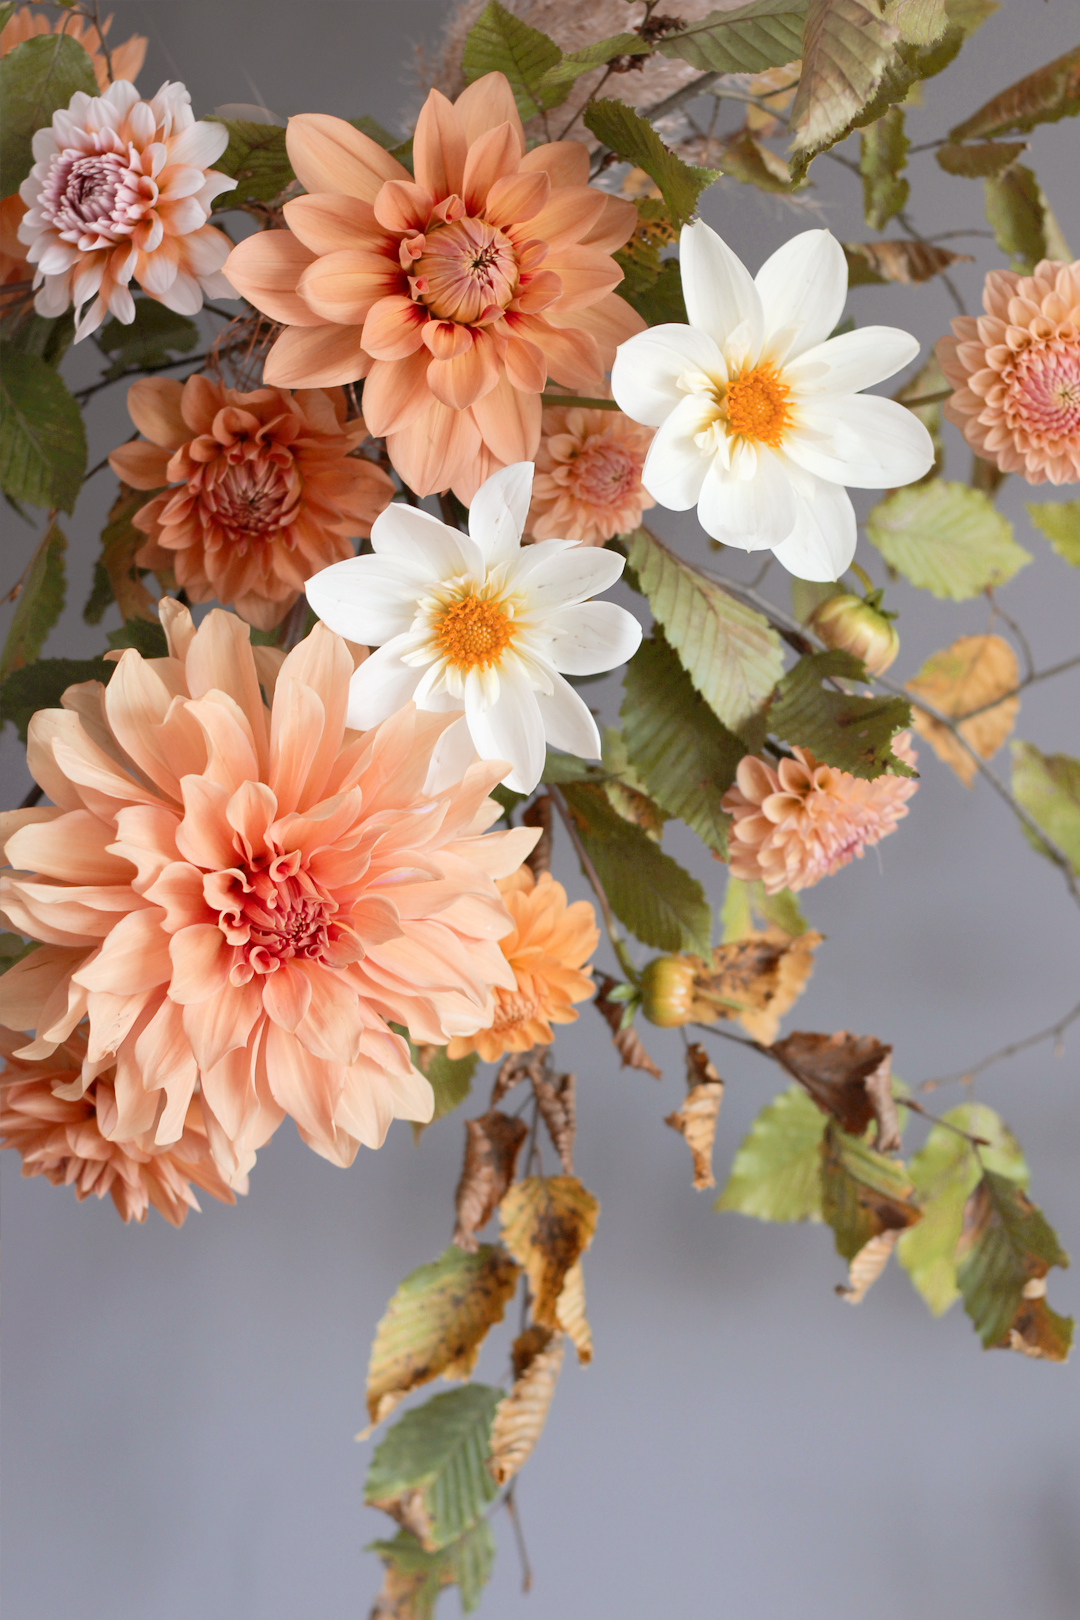 hanging-floral-arrangement-dahlia-autuman-fall-nancy-straughan.jpg